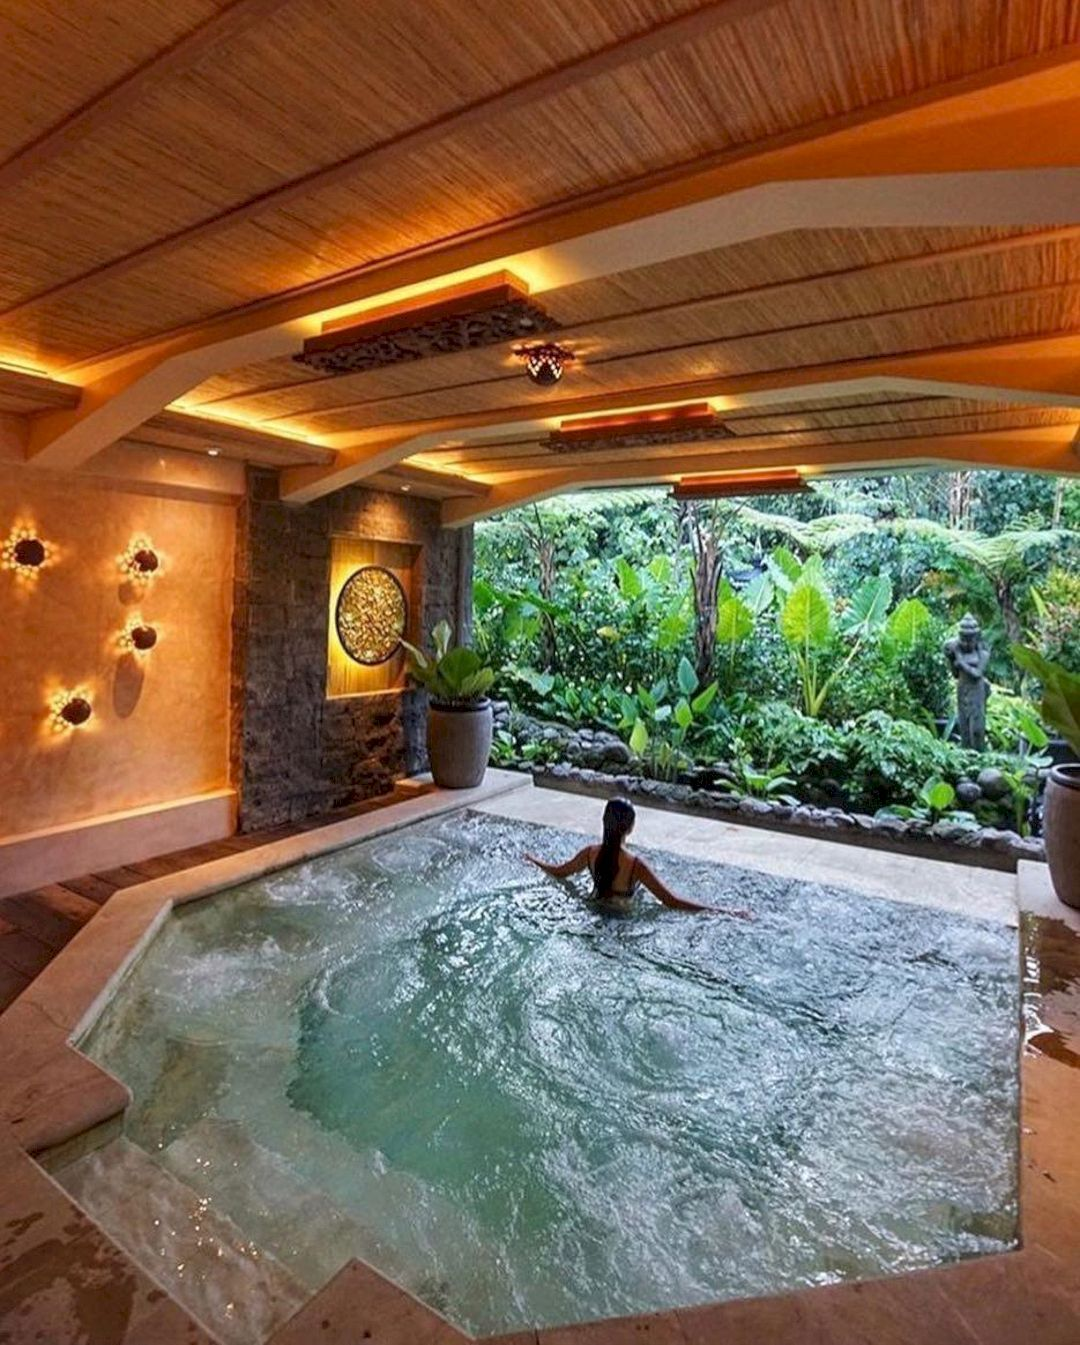 The Udaya Resorts Spa Combination Of Nature Culture Luxury And Hospitality Of Bali Home Spa Room Indoor Swimming Pool Design Indoor Jacuzzi